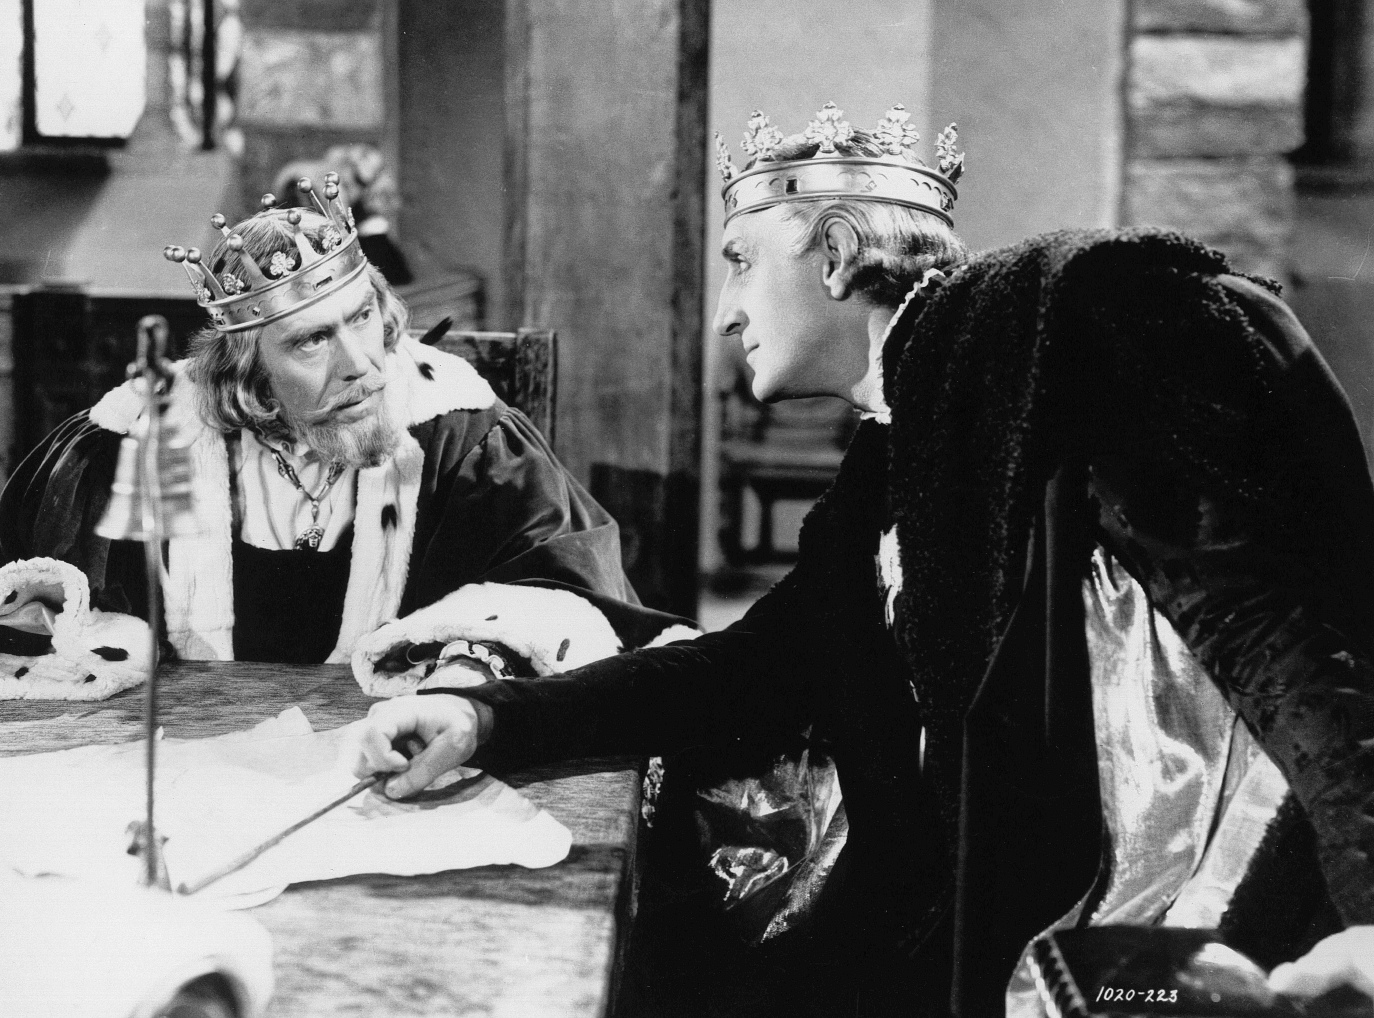 Basil Rathbone and Leo G. Carroll in Tower of London (1939)